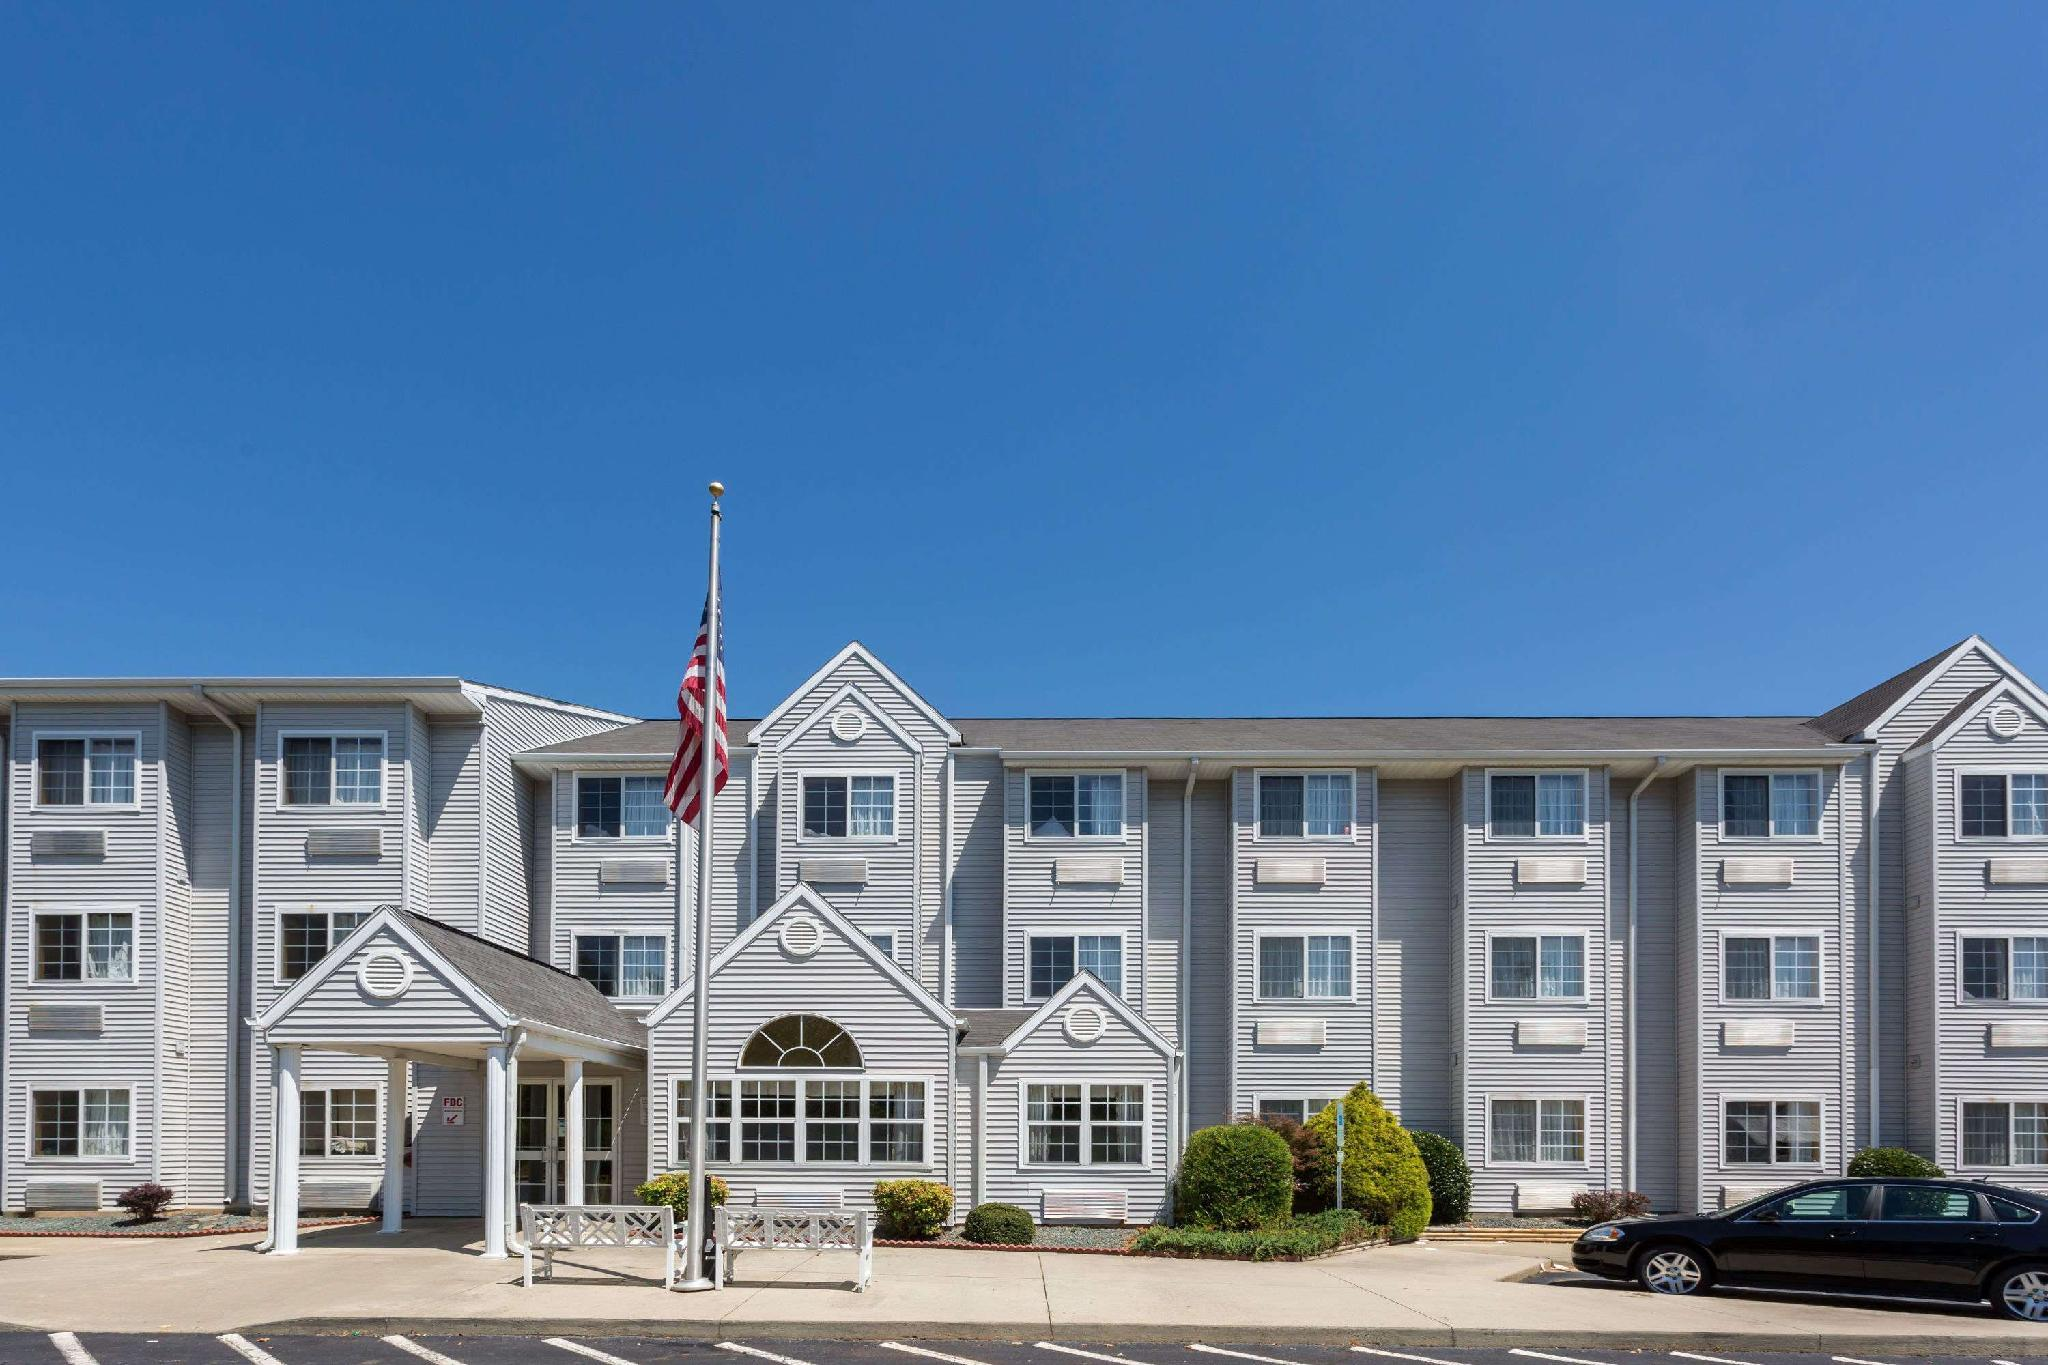 Microtel Inn And Suites By Wyndham Hillsborough